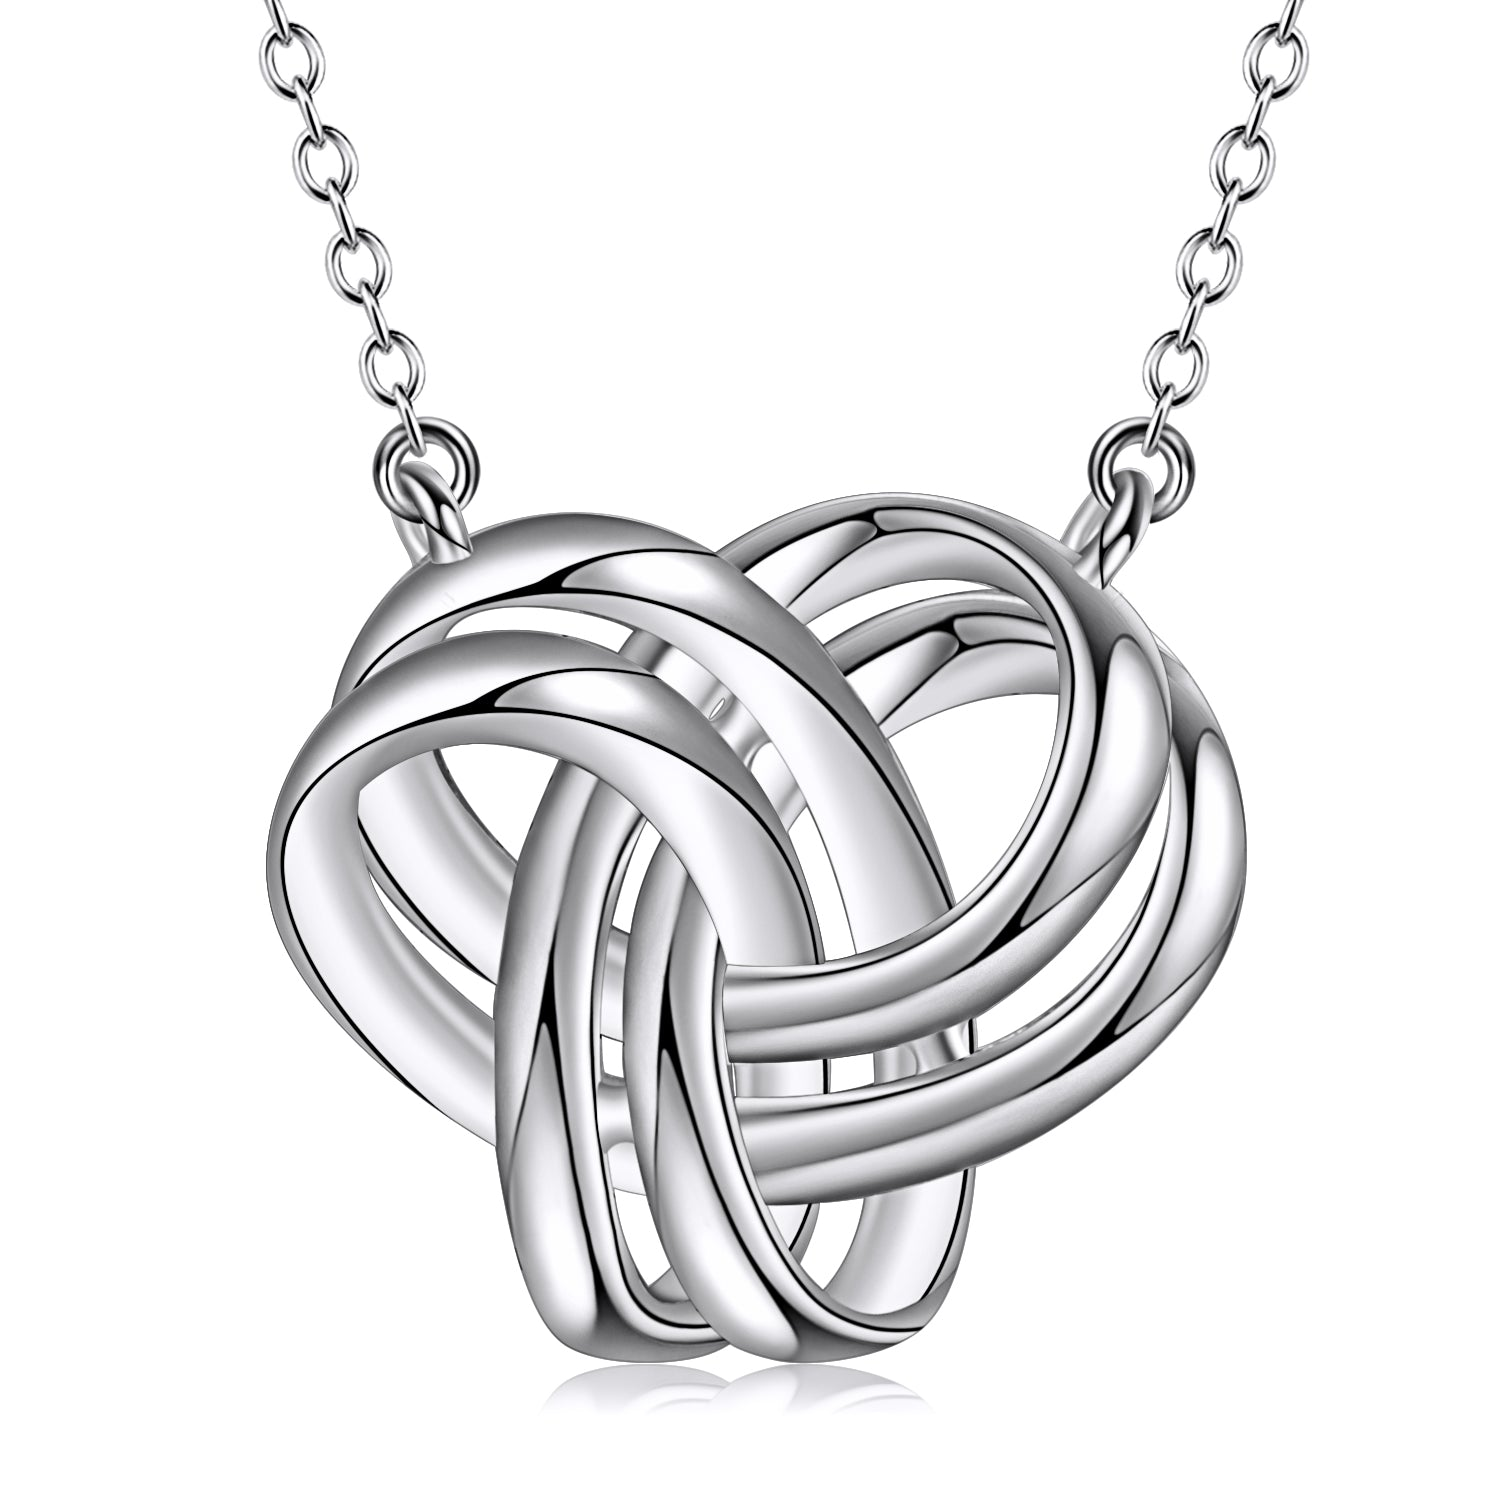 Celtic Knot Necklace Designs For Women And Men Couple Necklace